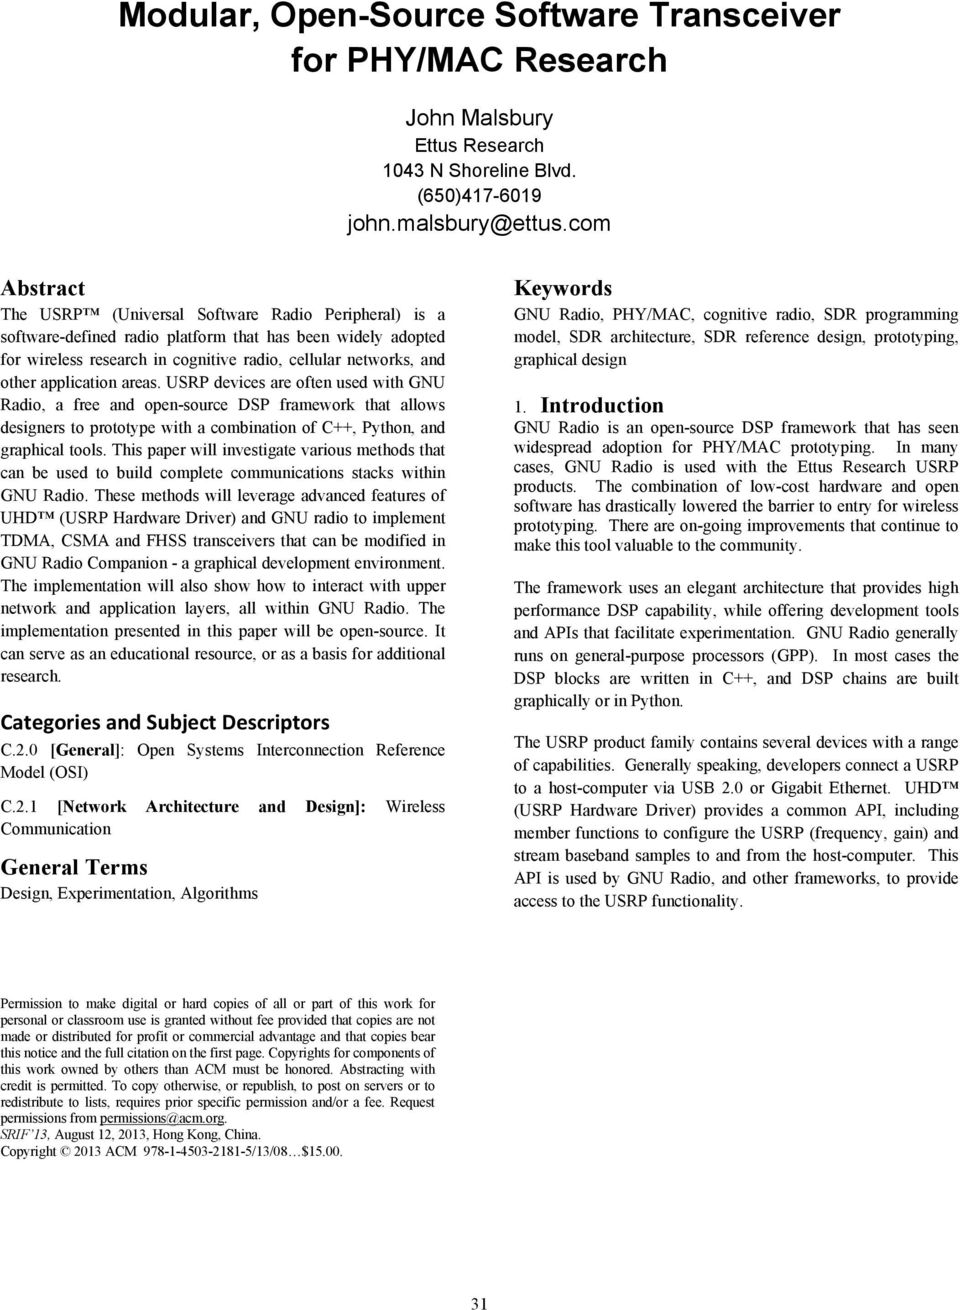 Modular, Open-Source Software Transceiver for PHY/MAC Research - PDF